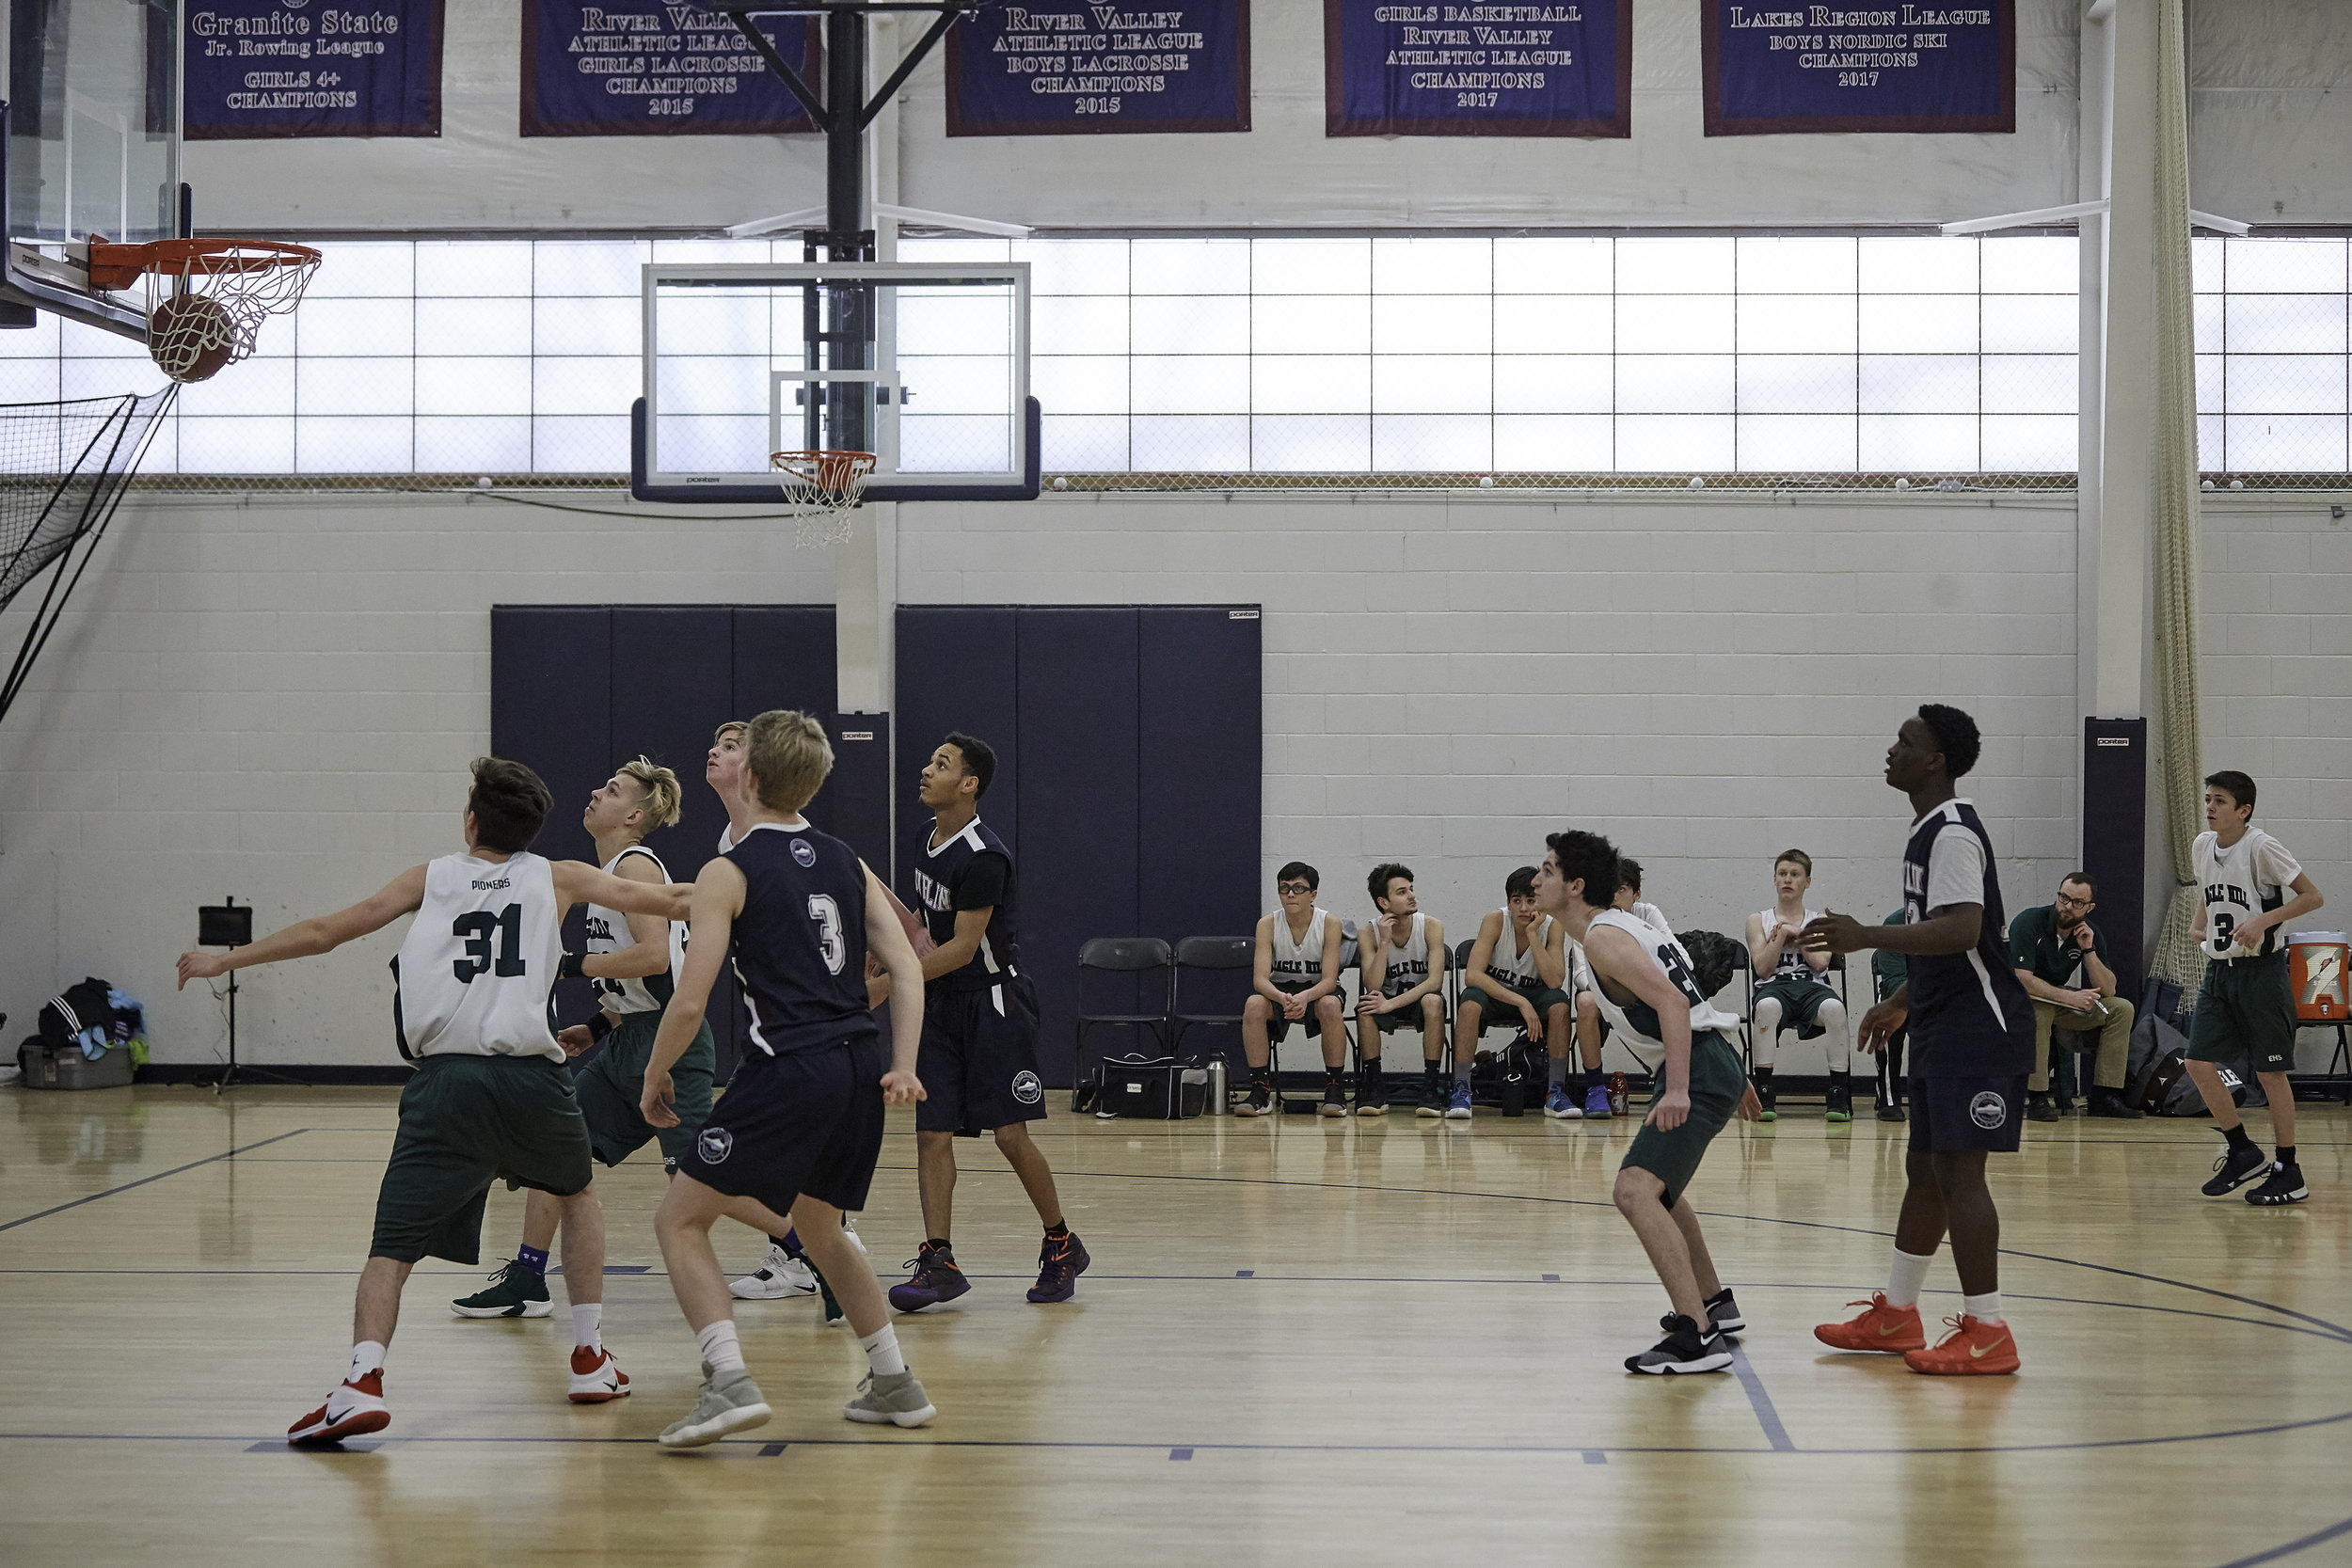 Boys Varsity Basketball vs. Eagle Hill School JV at RVAL Tournament - February 11, 2019 - 167677.jpg